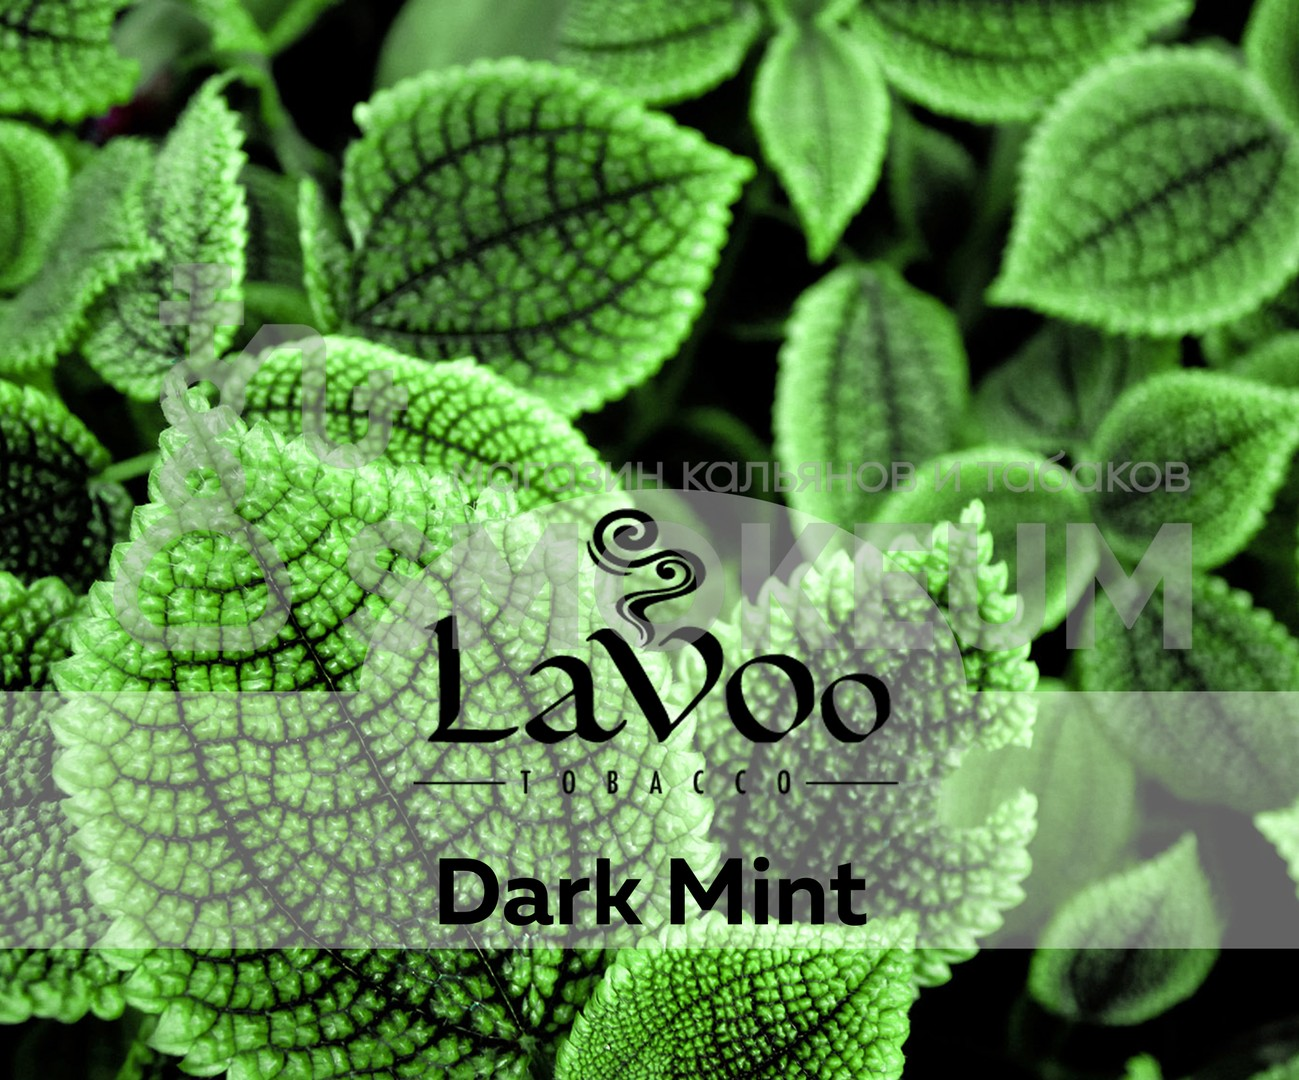 Табак Lavoo - Dark Mint (Мята) 200 гр